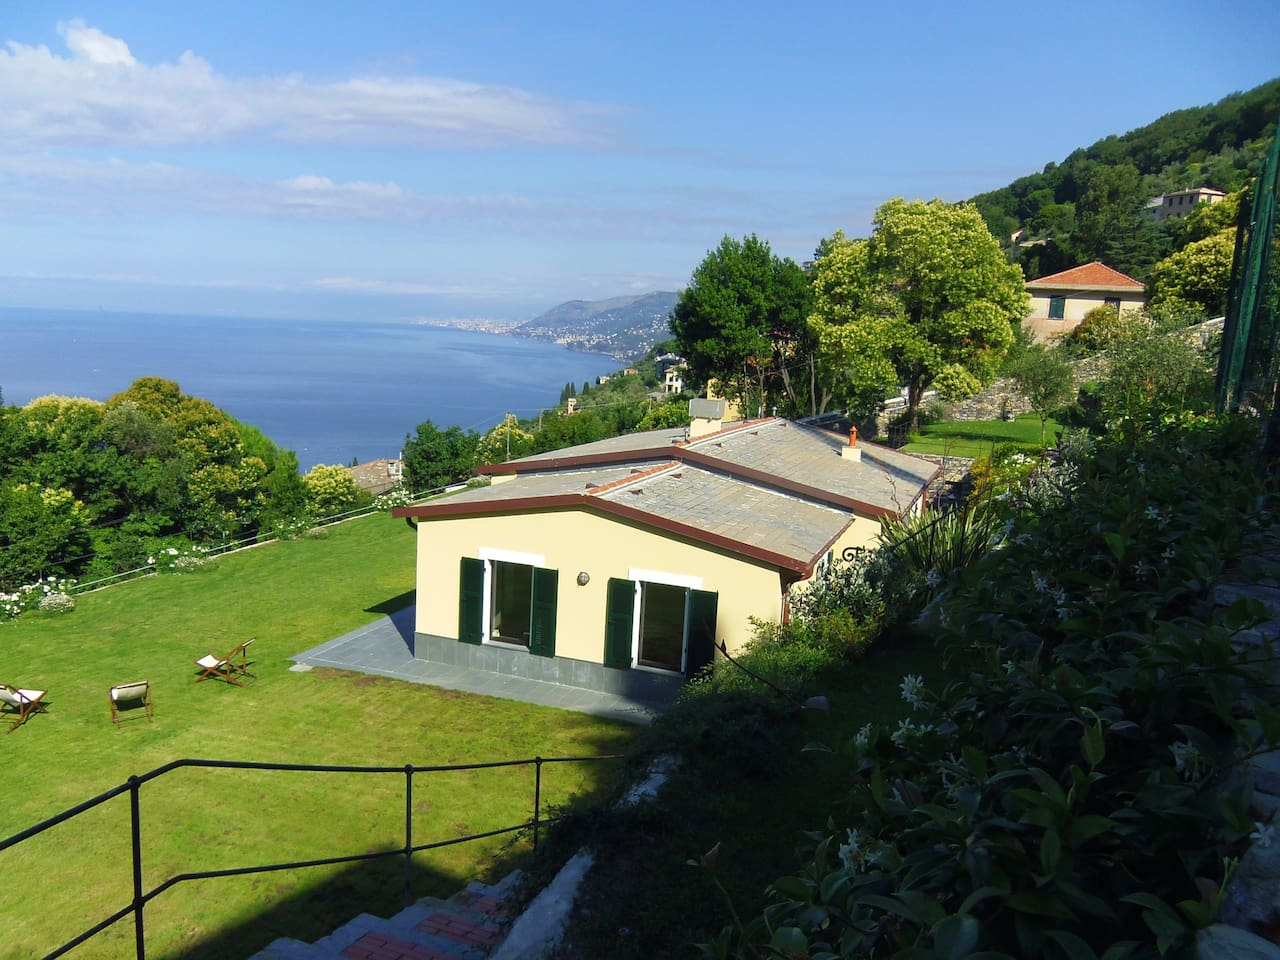 La pacecca,  single house in a cool and beautiful garden on the Camogli gulf